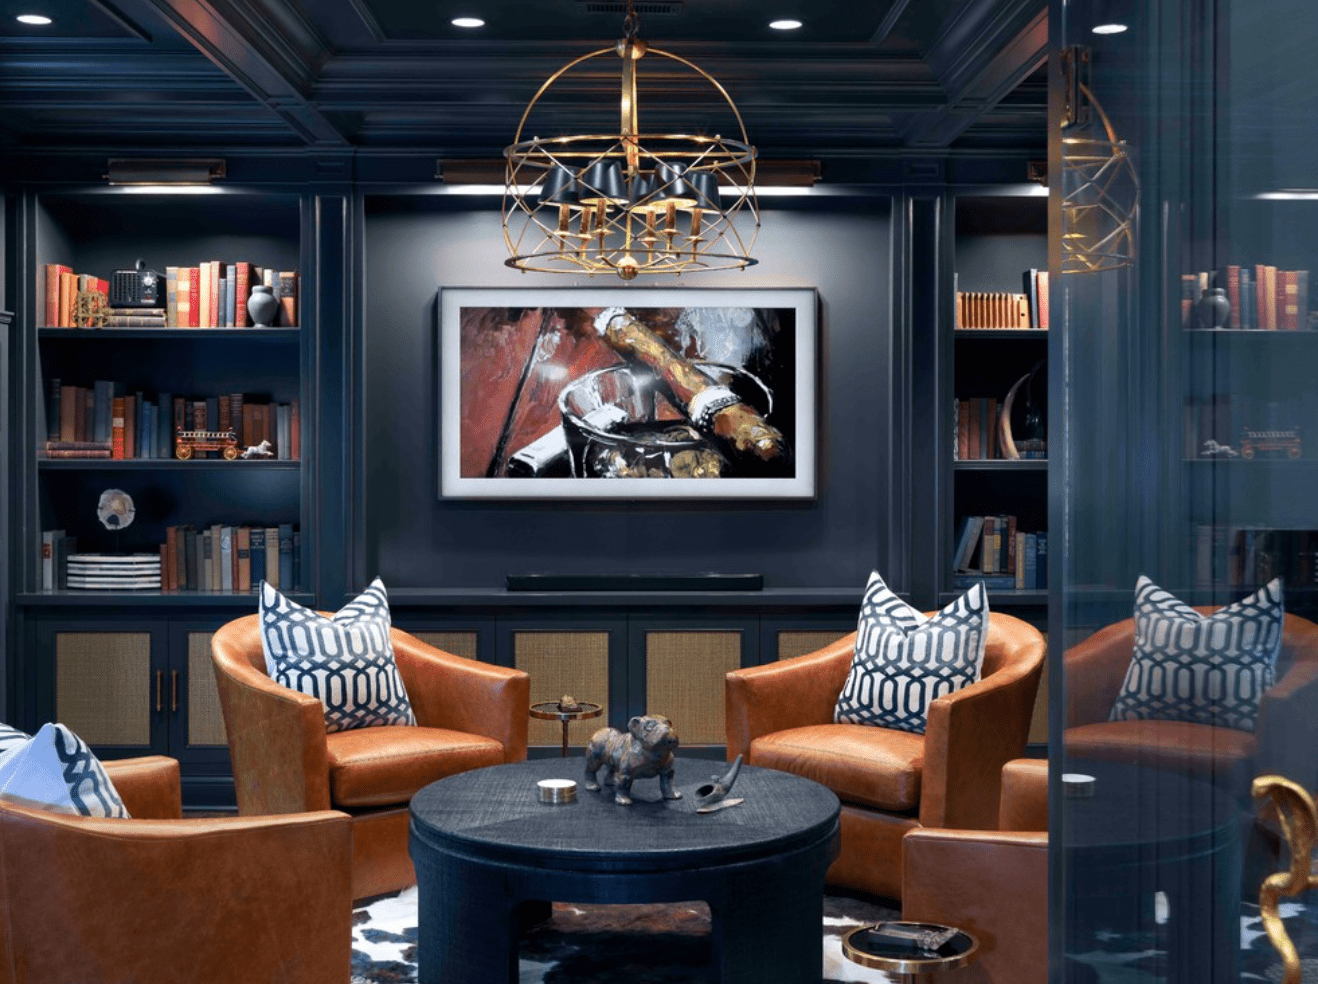 A cozy basement lit with recessed lighting, a chandelier, a picture lights mounted on bookshelves